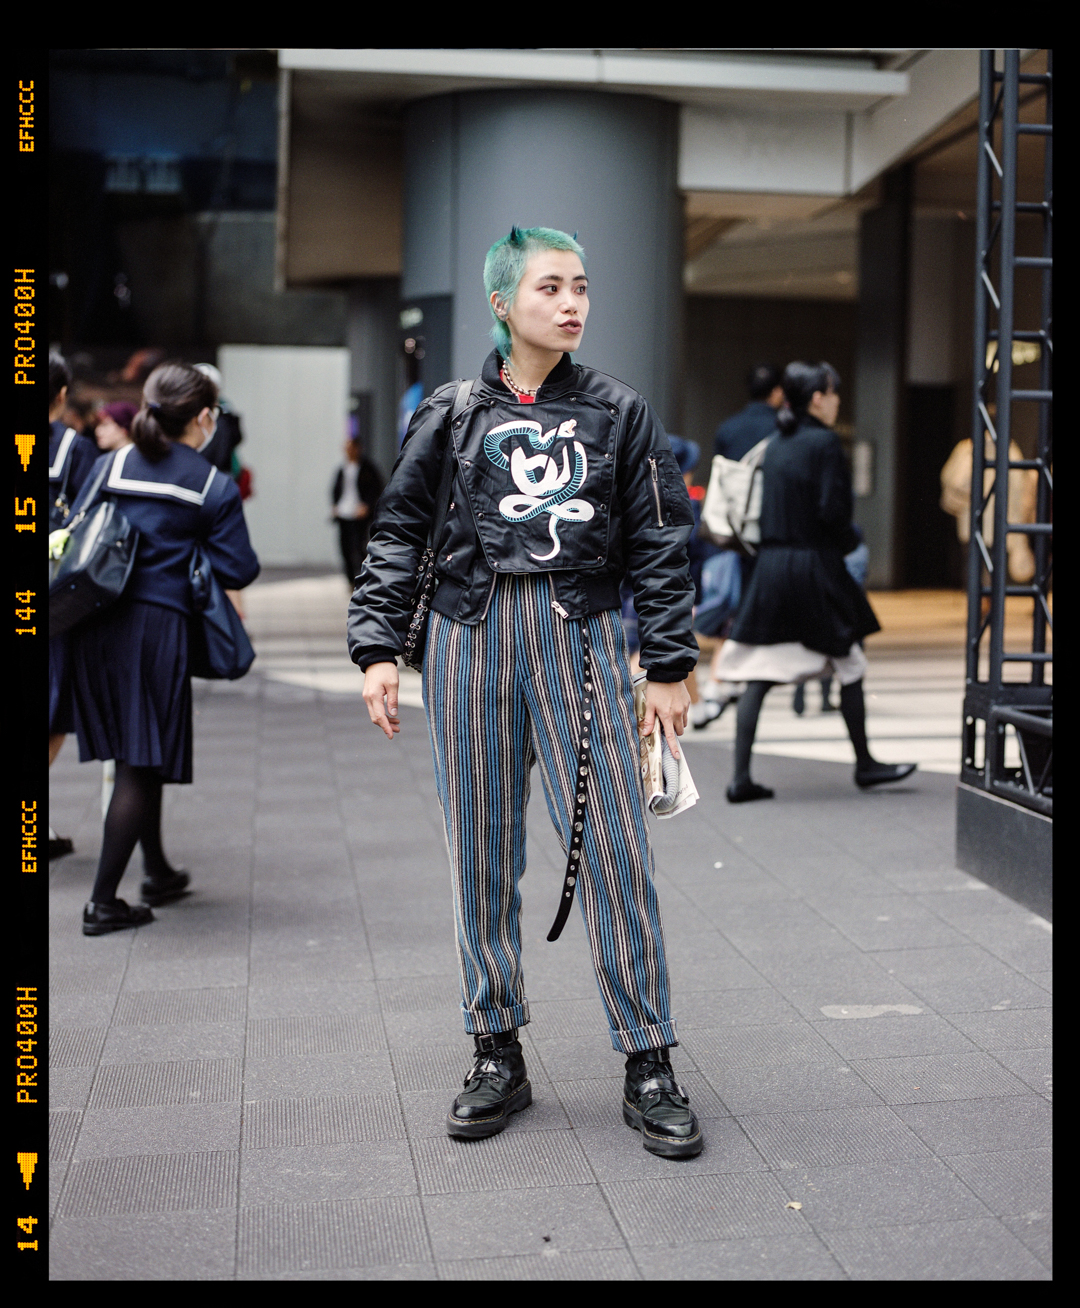 Erino wearing a DIY leather jacket and striped pants in Shibuya